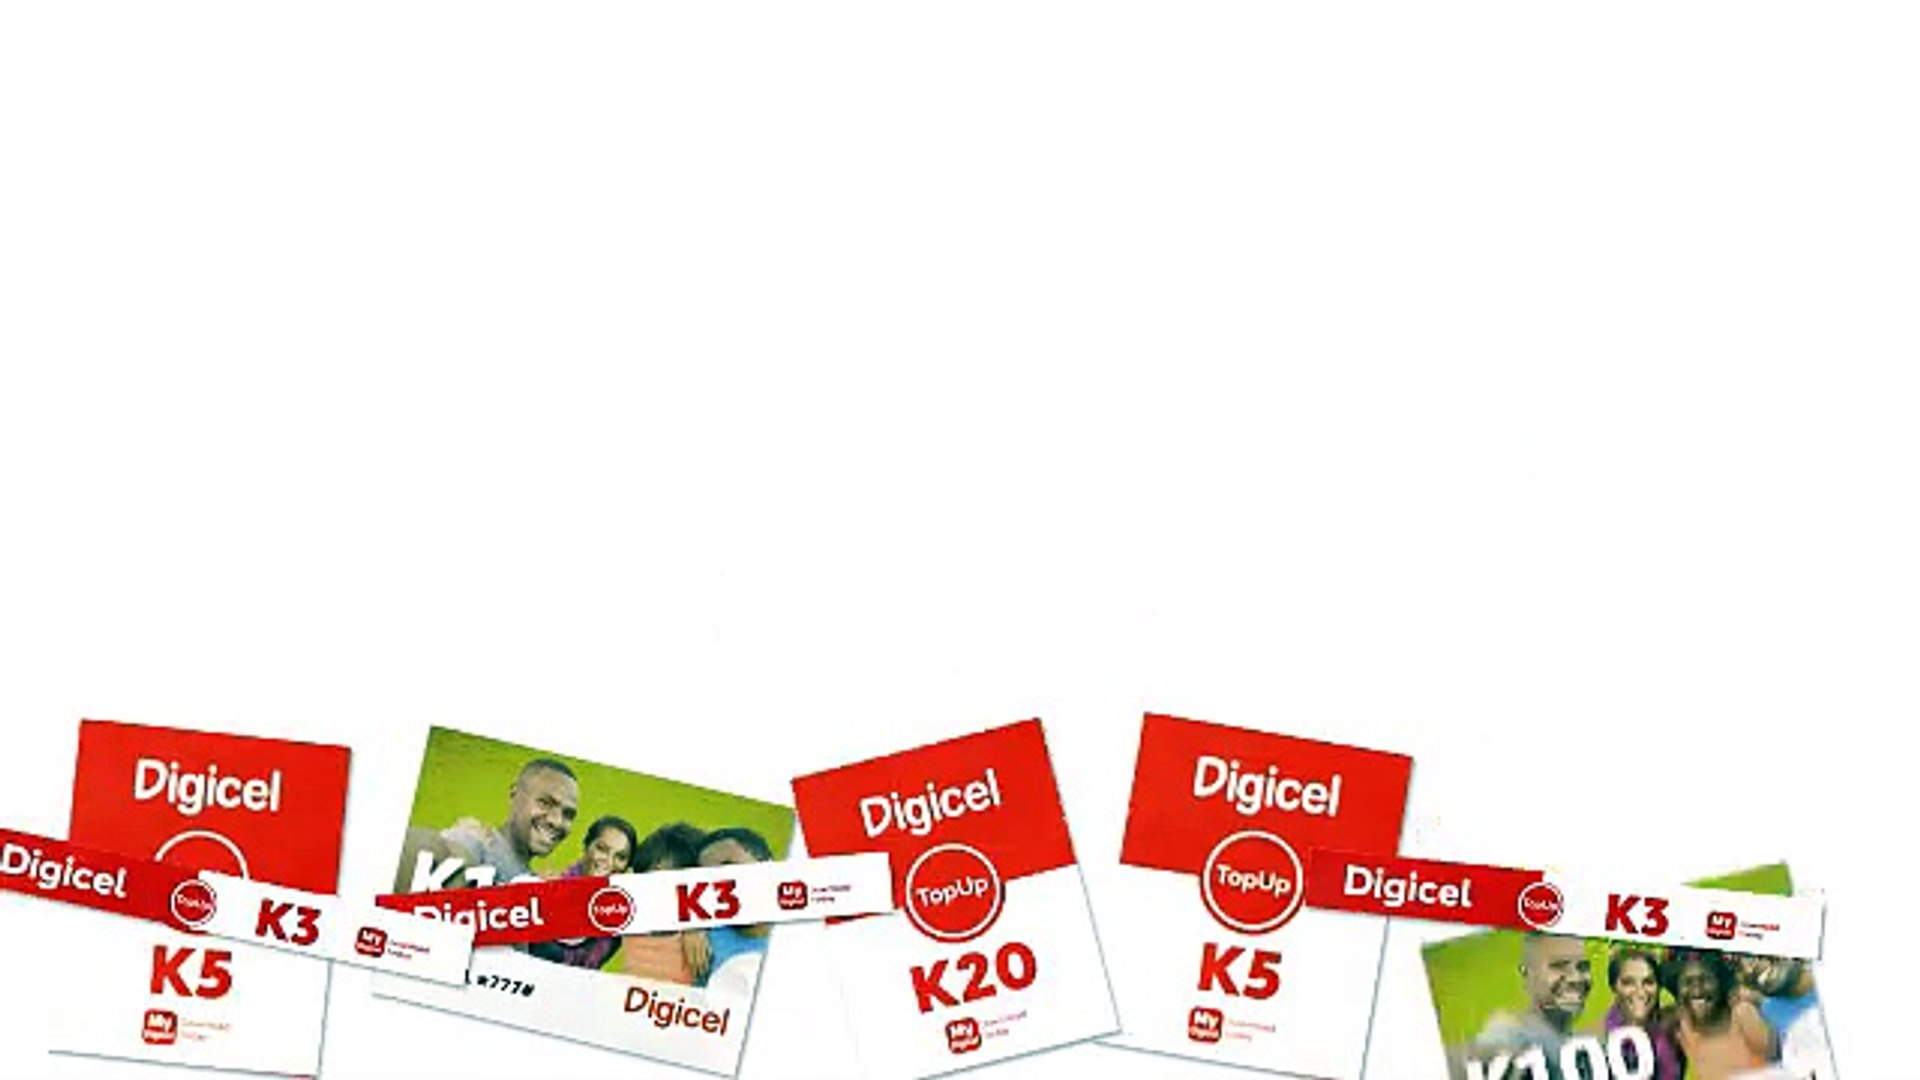 DOs & DON'Ts of topping up using your Digicel Flex card